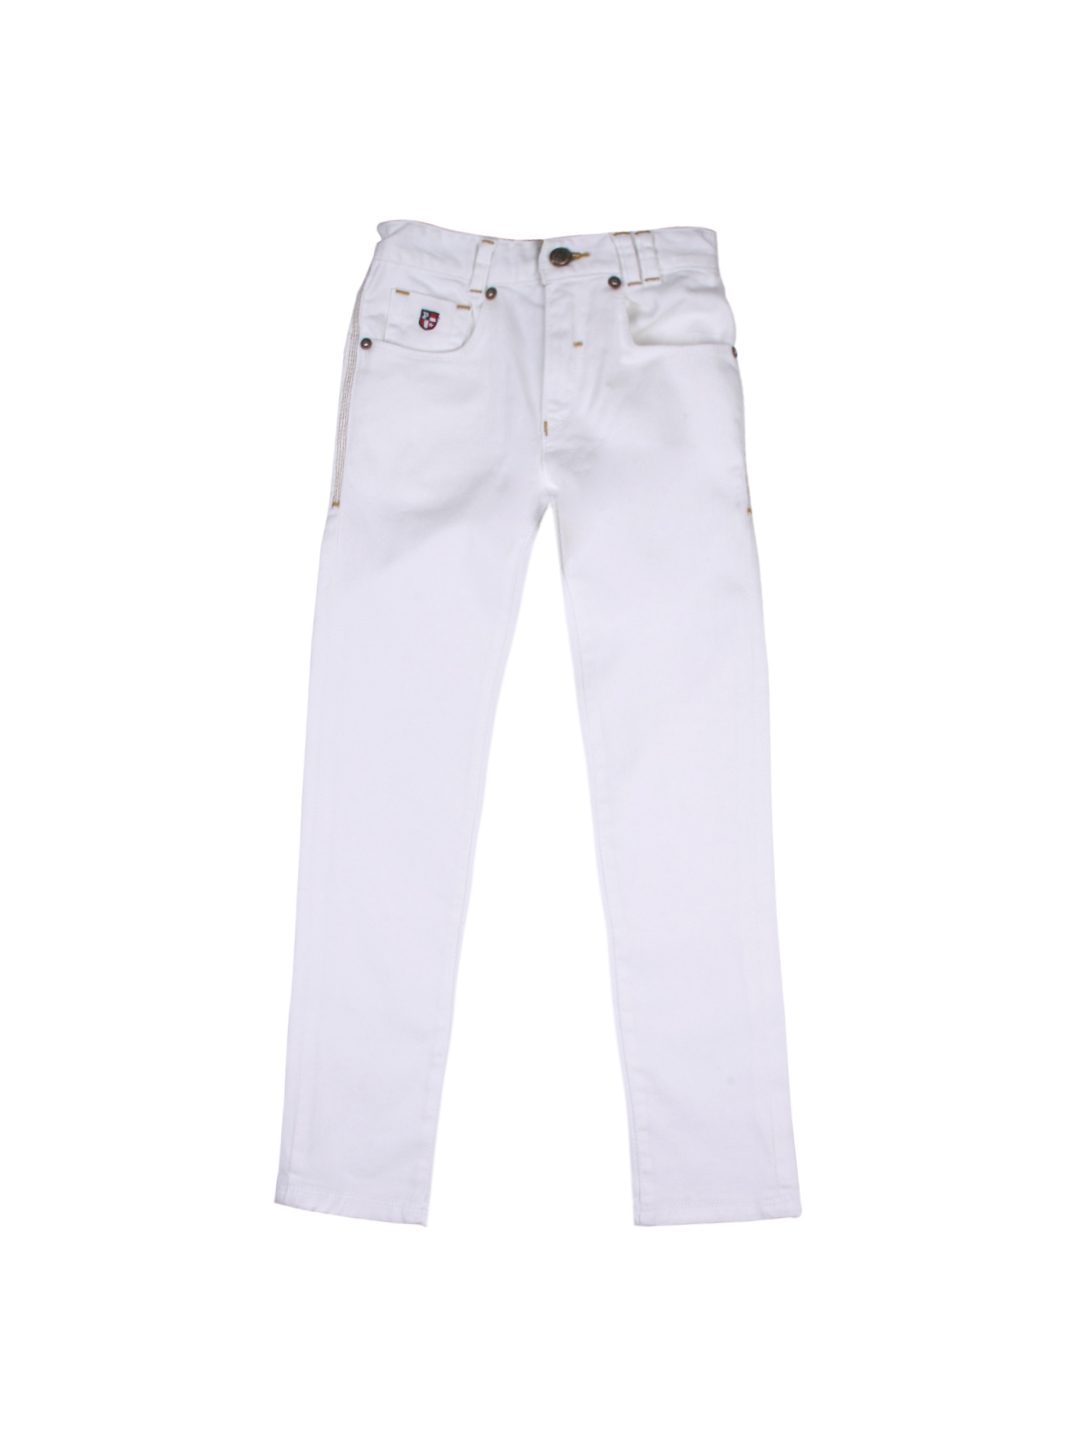 Buy U.S. Polo Assn. Kids Unisex White Jeans - Jeans for Unisex